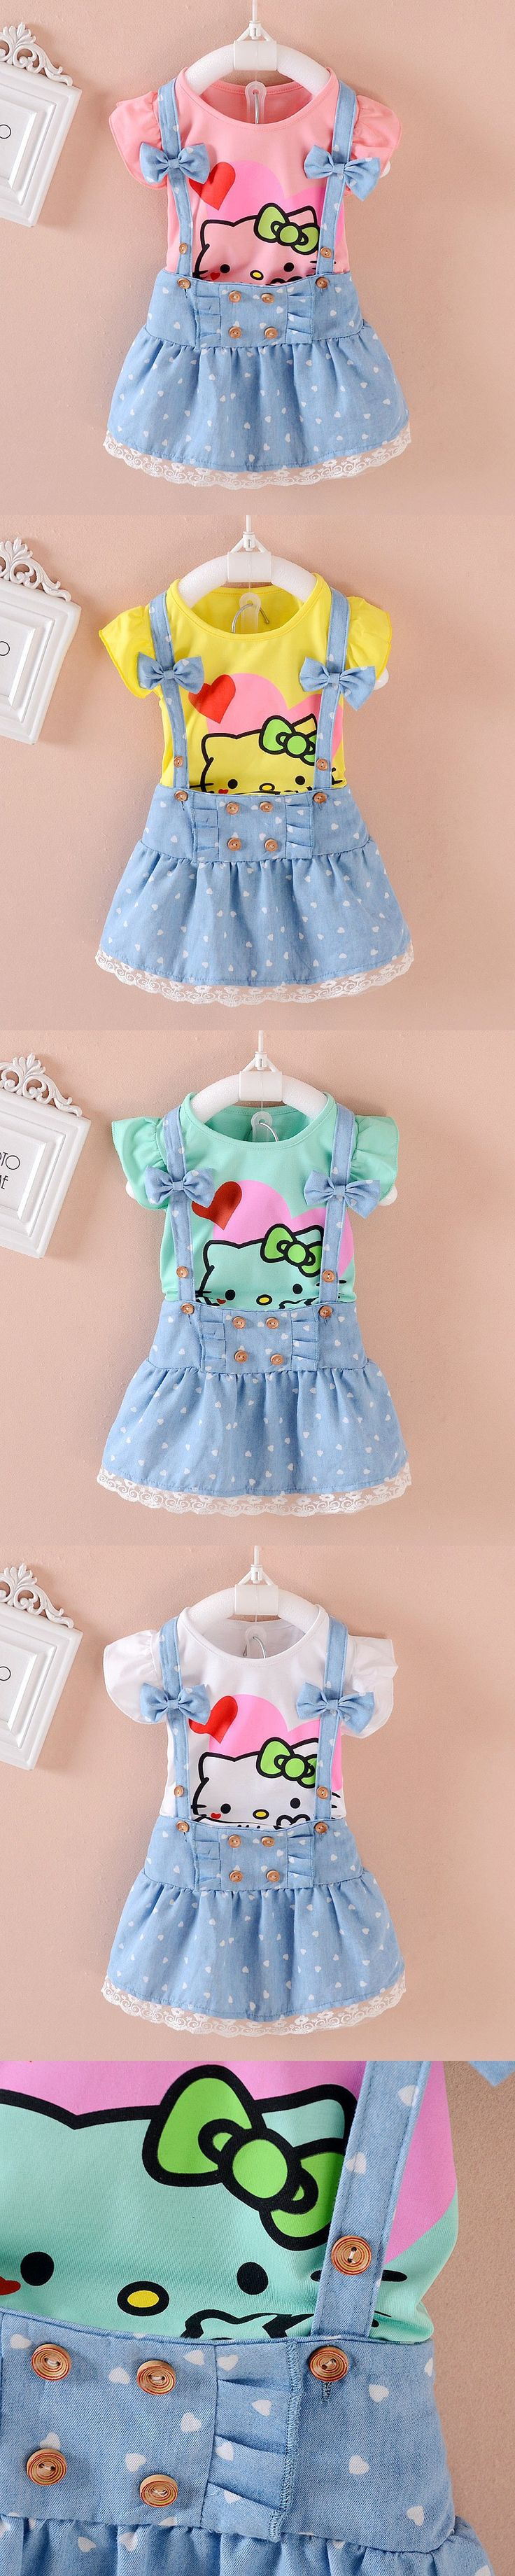 Hello Kitty Girl Dress Dresses Kids Girls clothes Children clothing Summer 2016 Toddler girl clothing Set Casual Fashion T569 $5.99